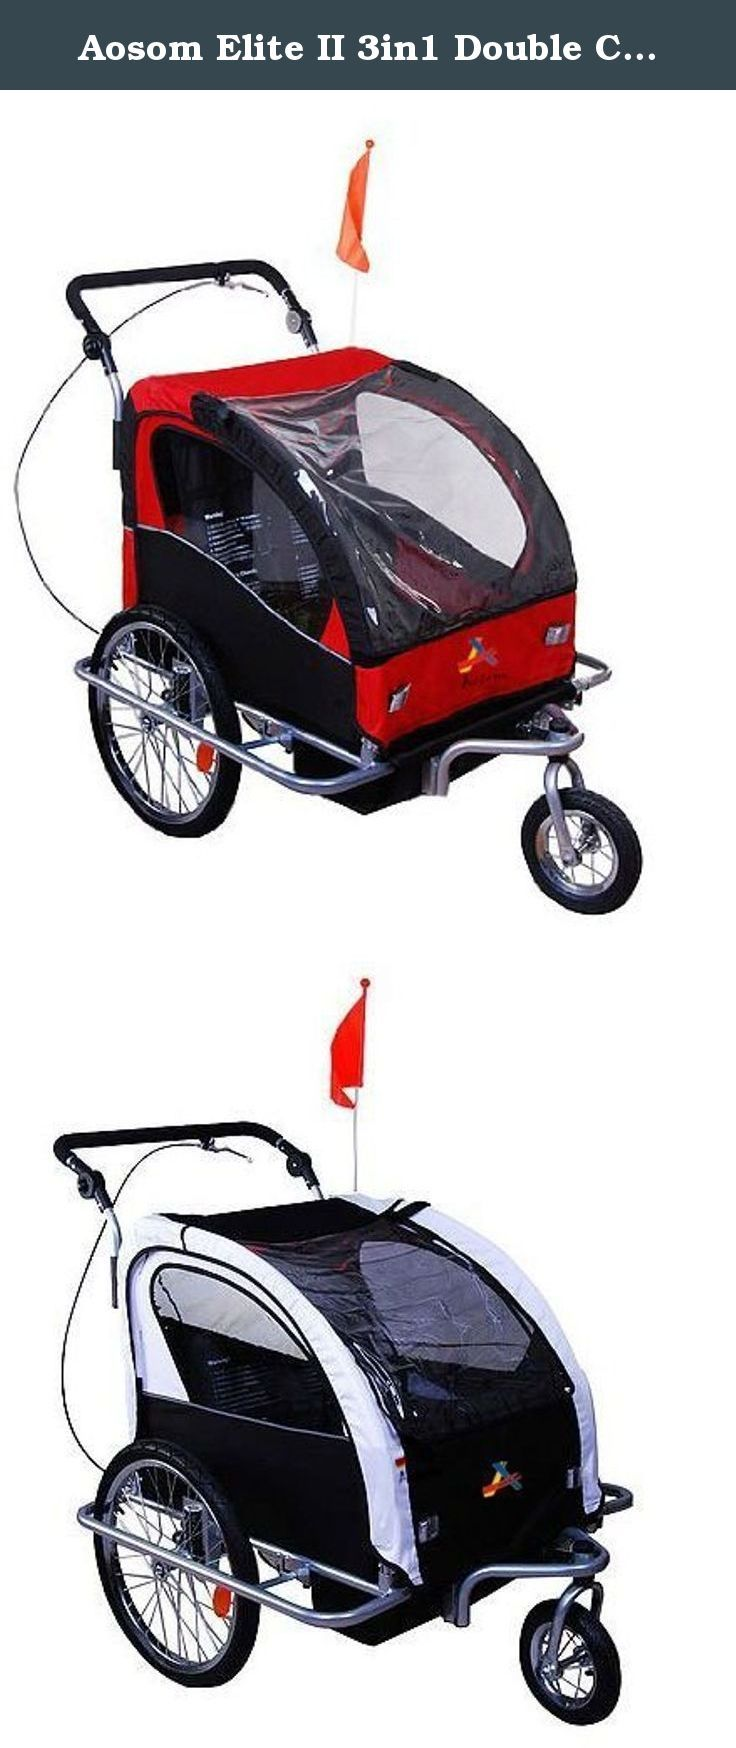 Aosom Elite II 3in1 Double Child Bike Trailer. Parents